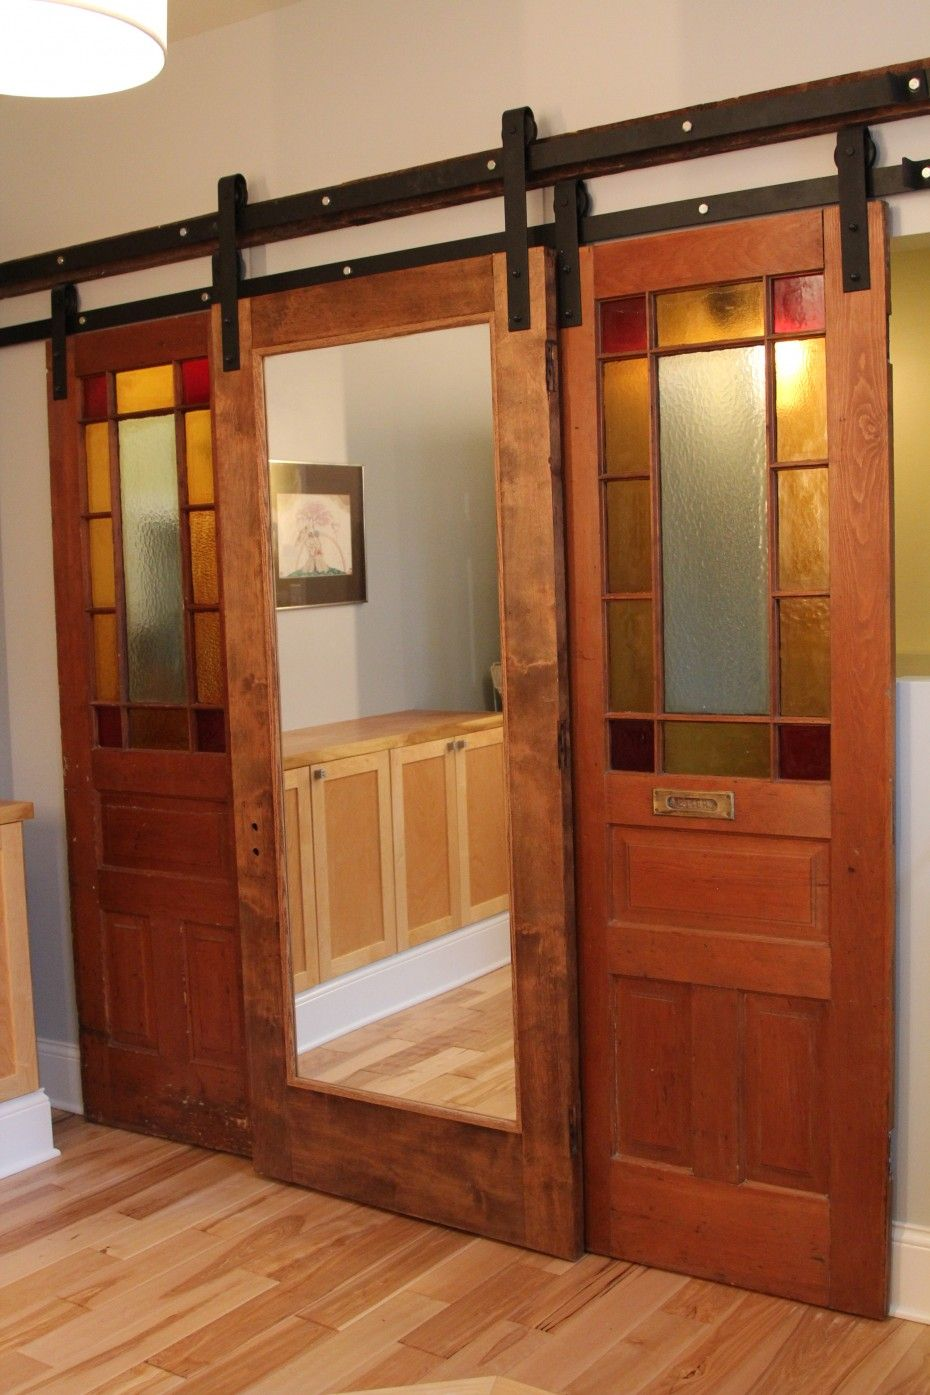 Charmant Image Result For Triple Track Closet Door